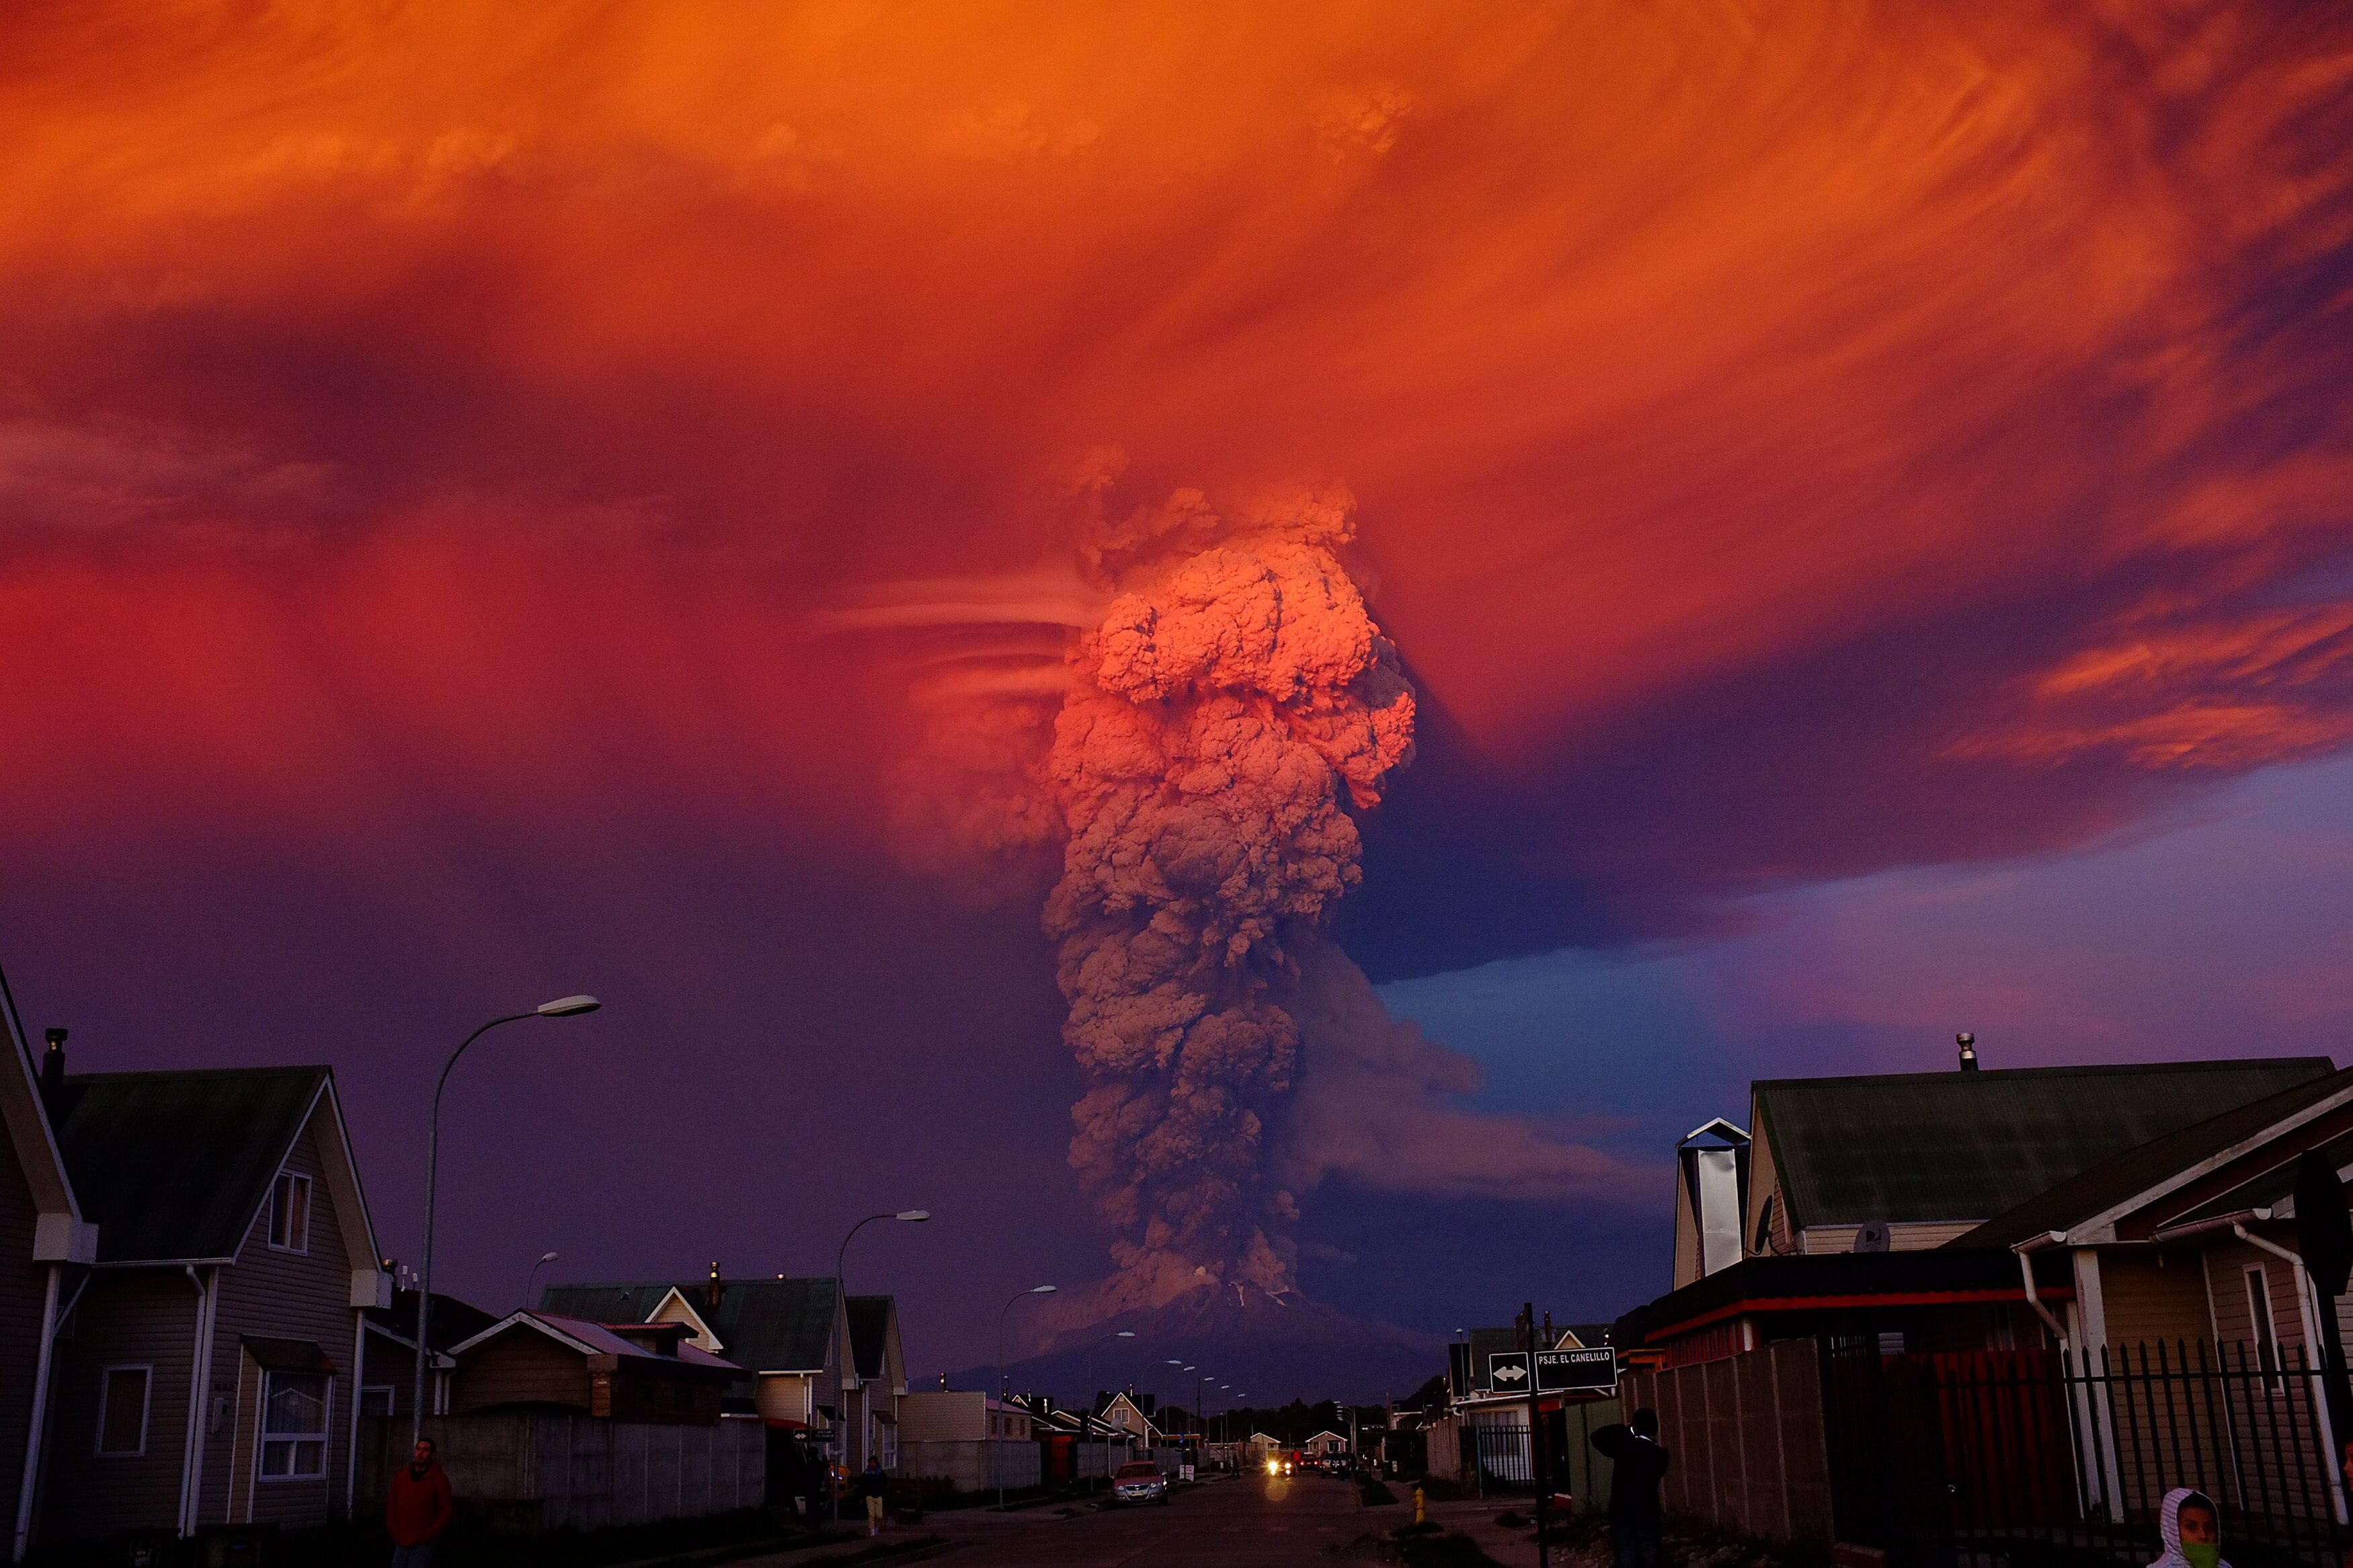 Alex Vidal Brecas—EPA The Chilean Calbuco volcano seen from Puerto Montt, located 600 miles south of Santiago de Chile, Chile on April 22, 2015.